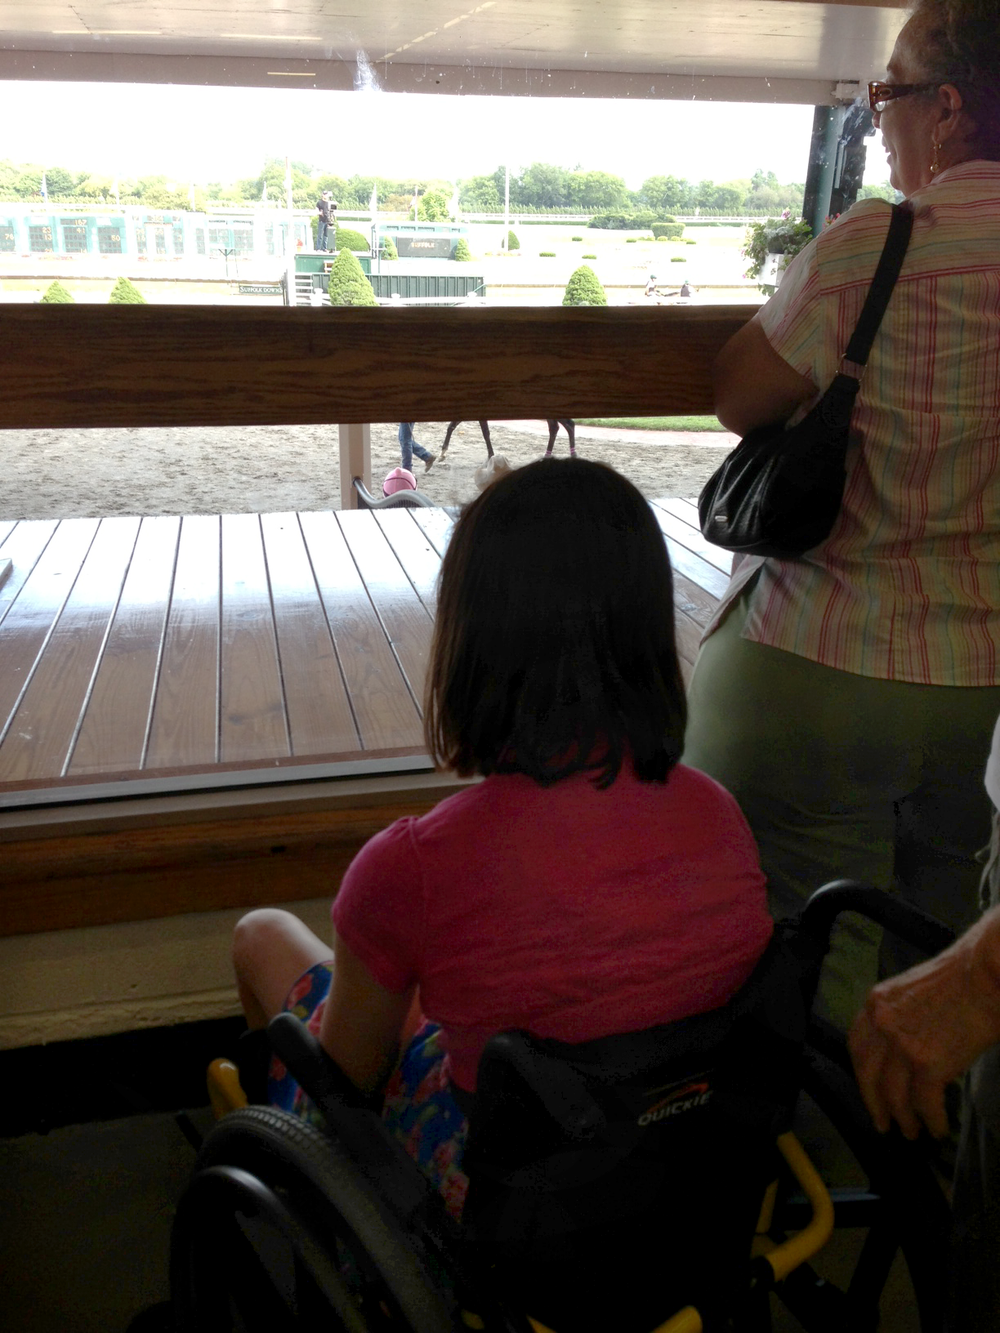 The jockey looked at the girl sitting on the rail and waved again as the entire family waved back and wished her luck.